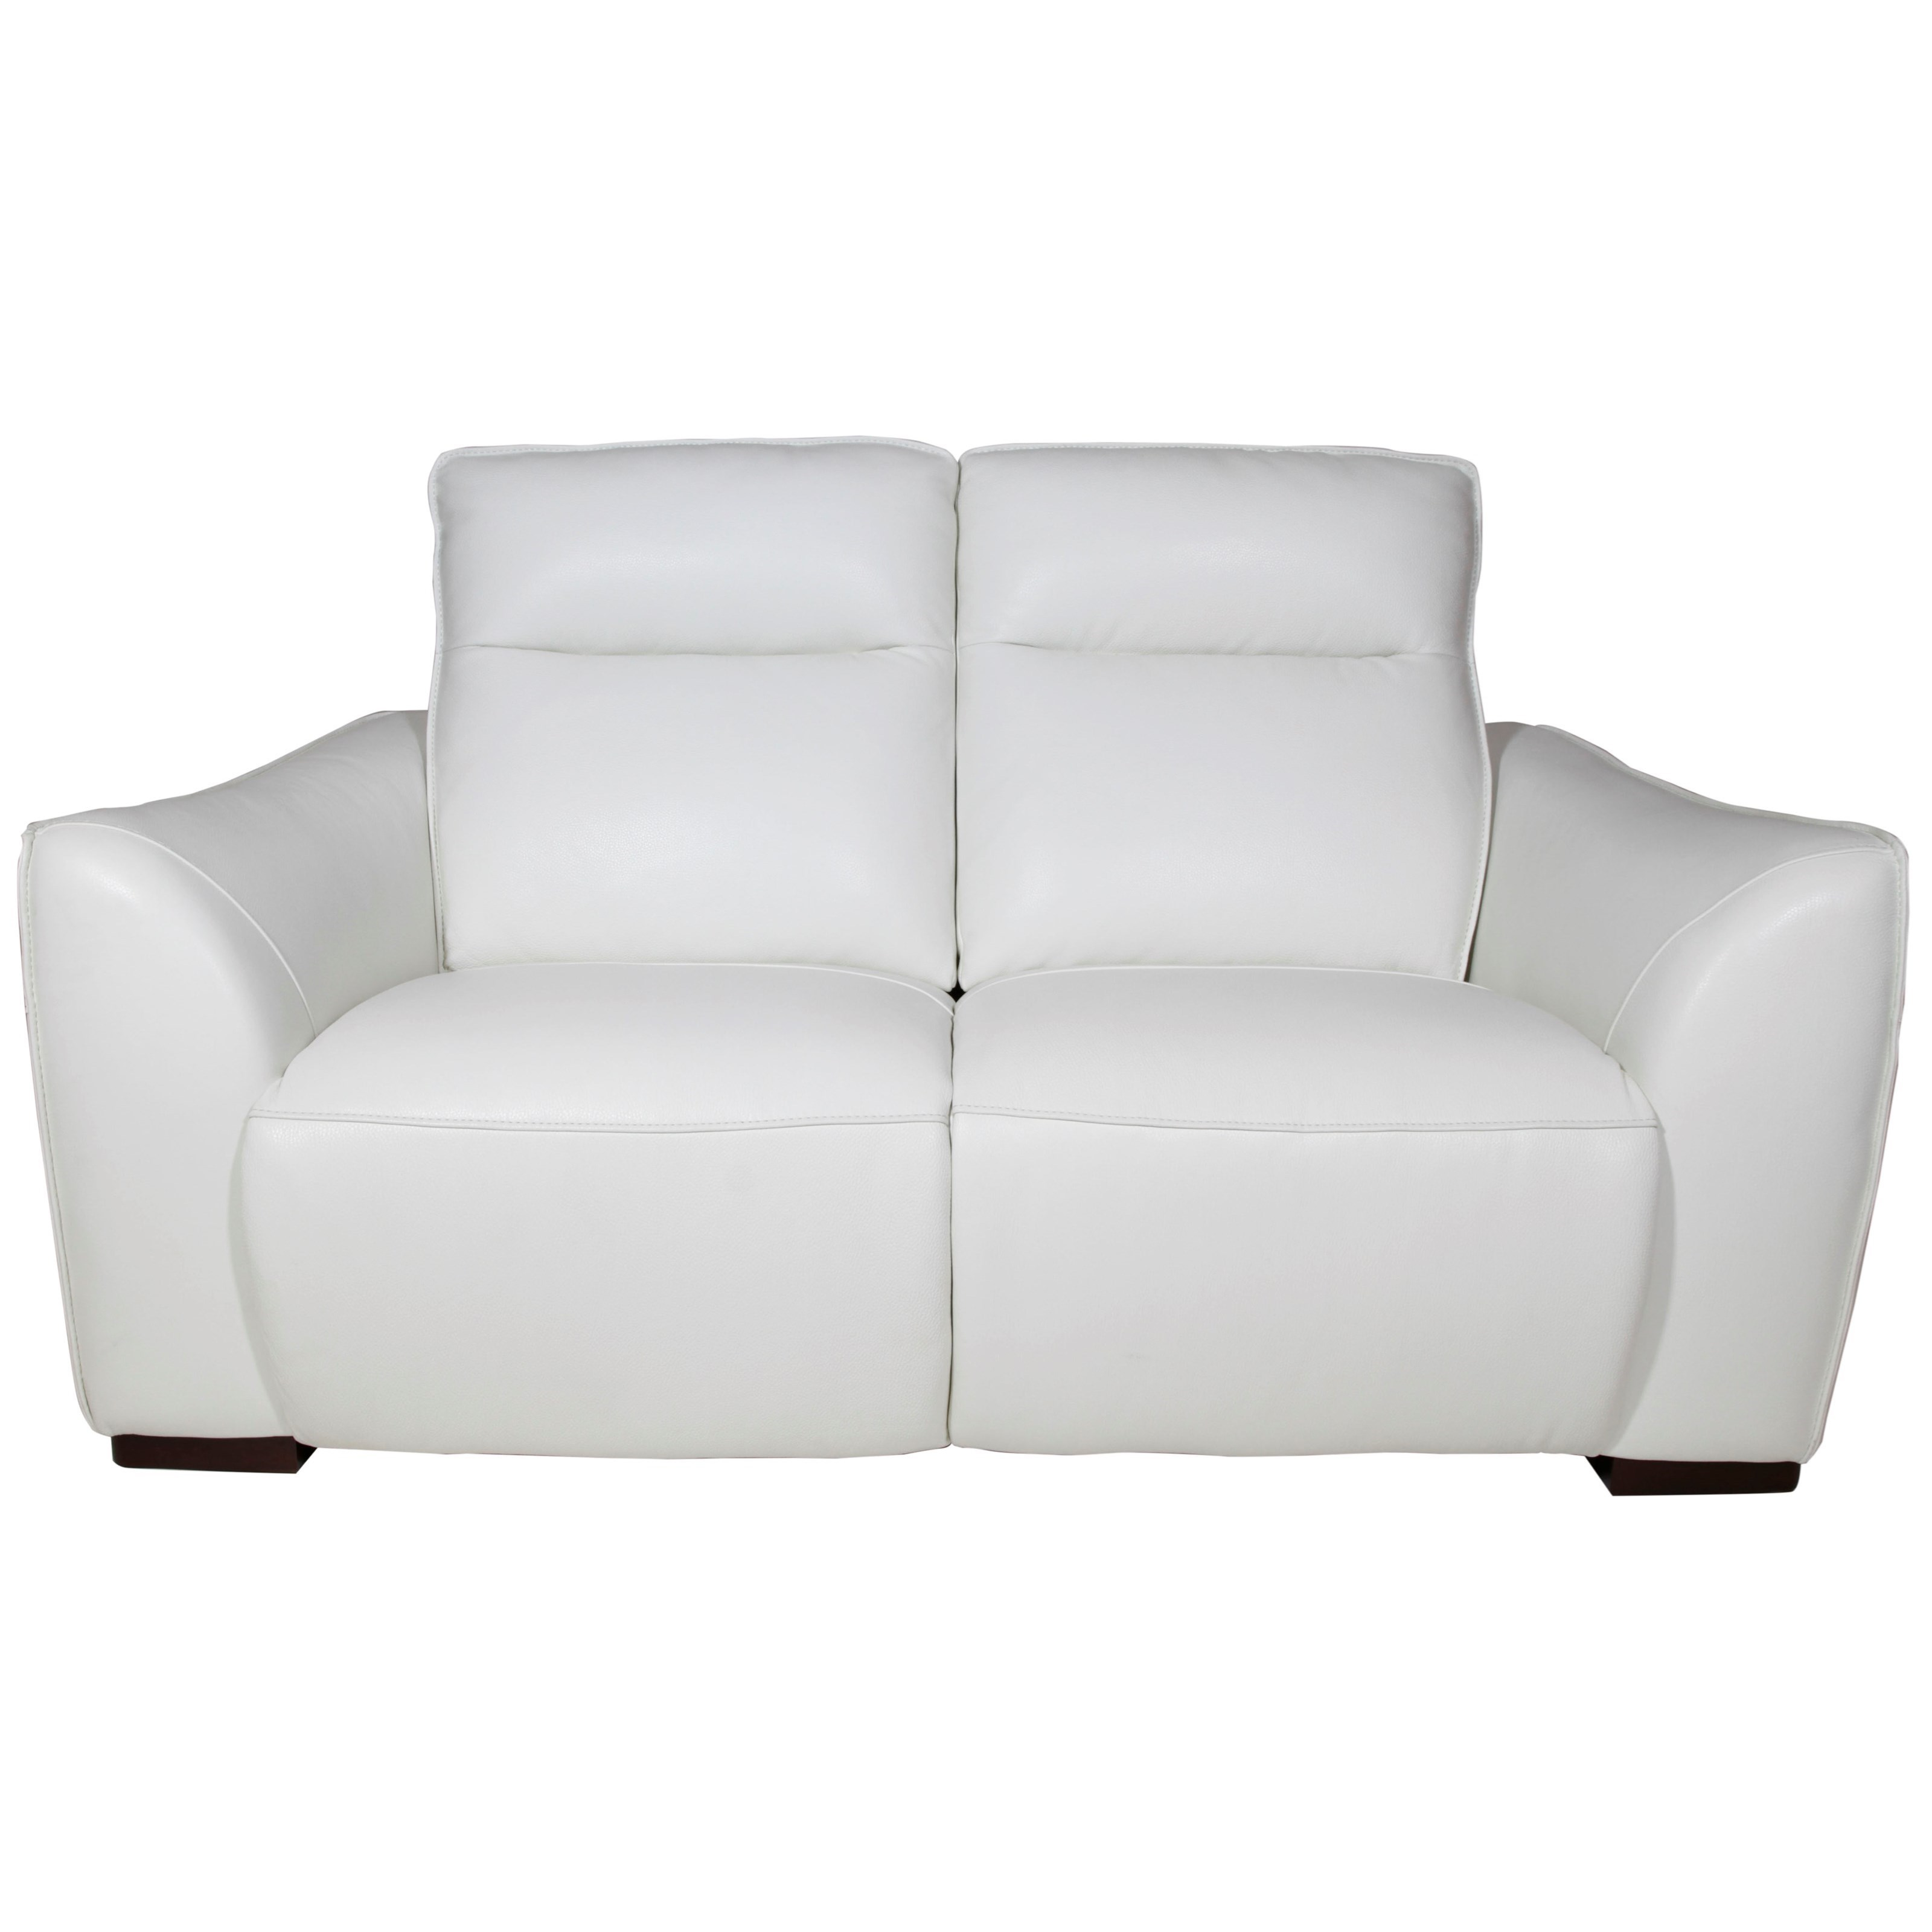 31945 Power Reclining Loveseat by Violino at Furniture Superstore - Rochester, MN